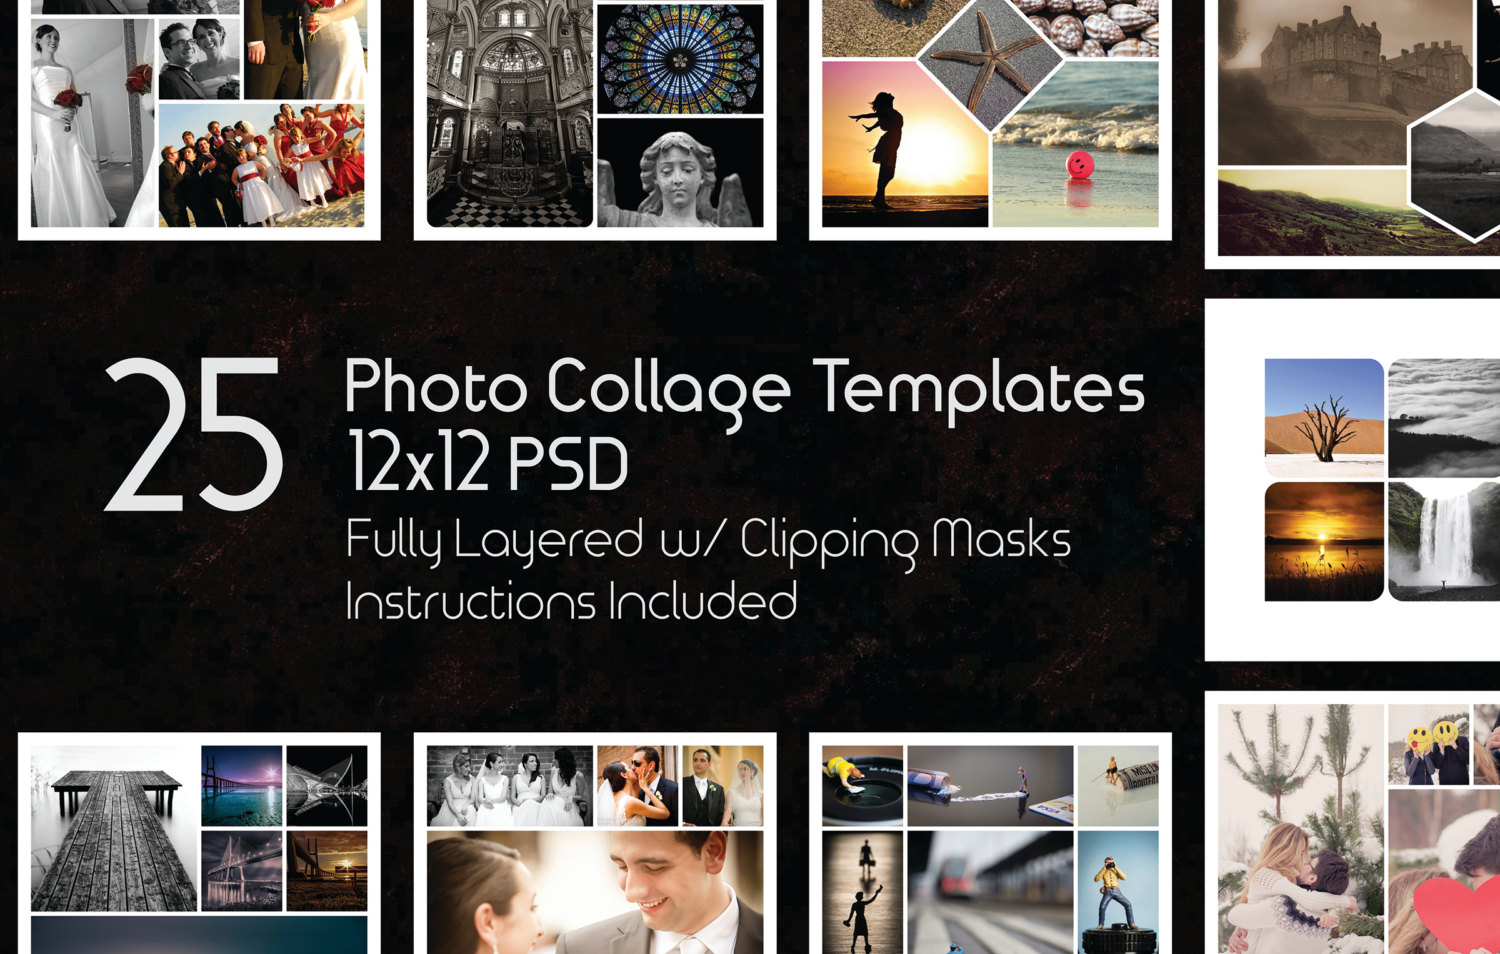 12x12 Photo Collage Templates Pack, 25 PSD Templates, Photoshop ...